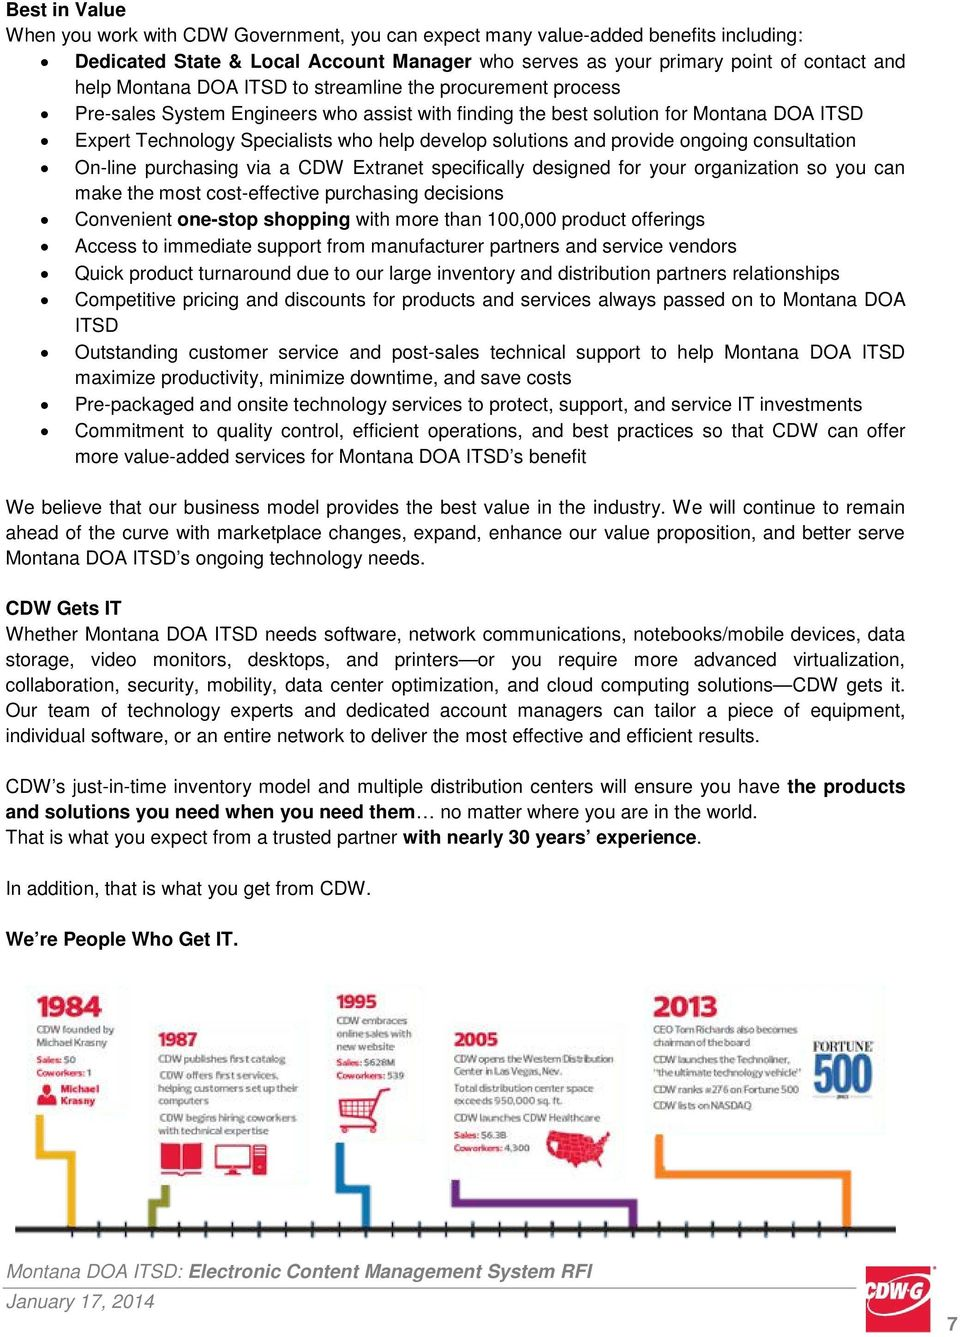 solutions and provide ongoing consultation On-line purchasing via a CDW Etranet specifically designed for your organization so you can make the most cost-effective purchasing decisions Convenient